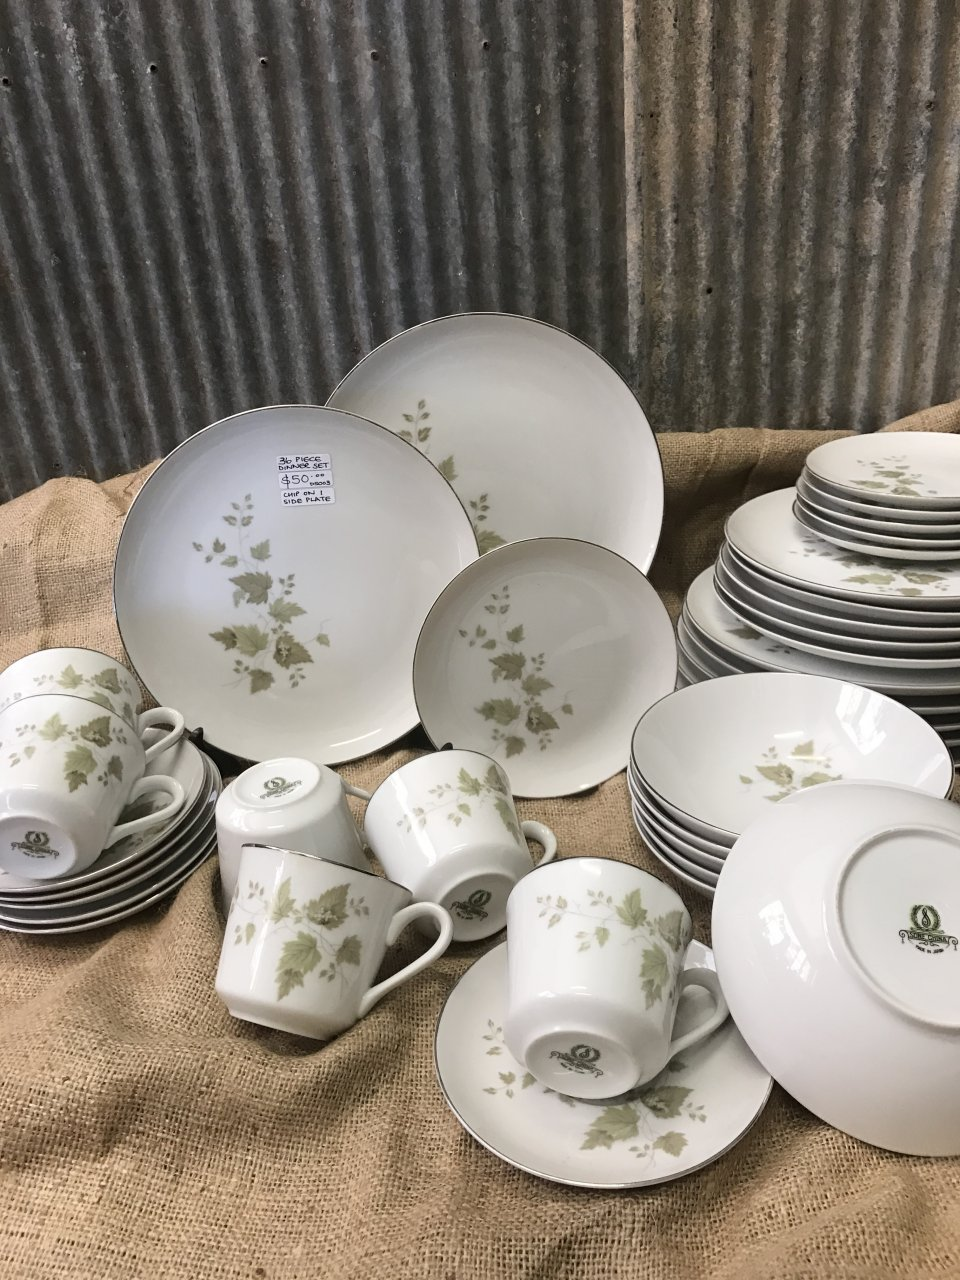 I have a dinner set of sone China with grapes and leaves on them. I donu0027t know what it is or how much itu0027s worth but Iu0027d like to know. Please help. & I Have A Dinner Set Of Sone China With Grapes And Leaves On Them. I ...